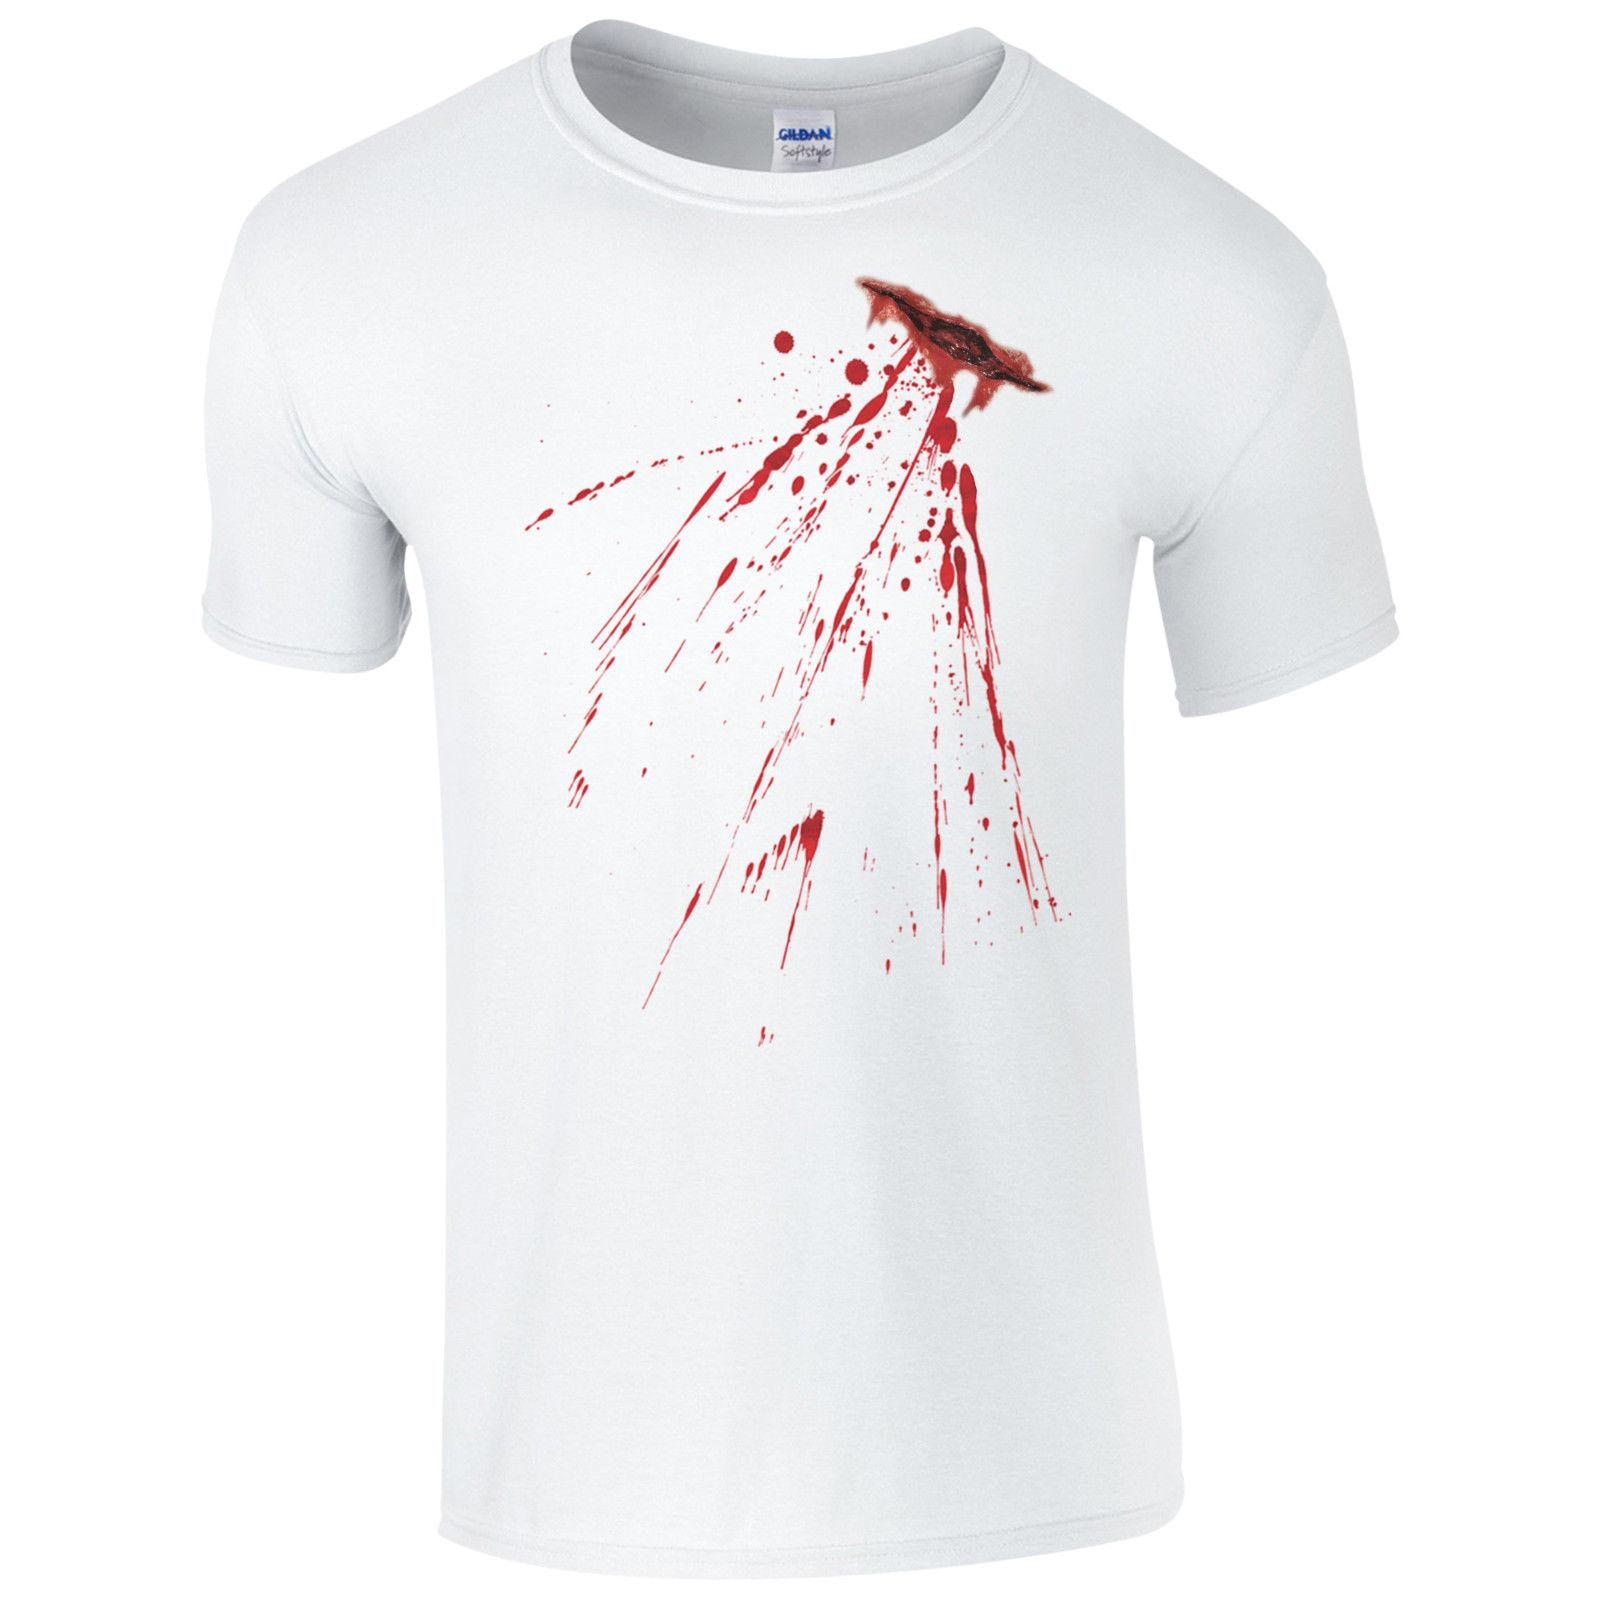 3e9a6781ab07 Fake Bloody Stab Wound T Shirt Halloween Knife Cut Stain Fancy Dress Mens  Top Cool Casual Pride T Shirt Funny T Shirts For Women Funny Shirt From ...